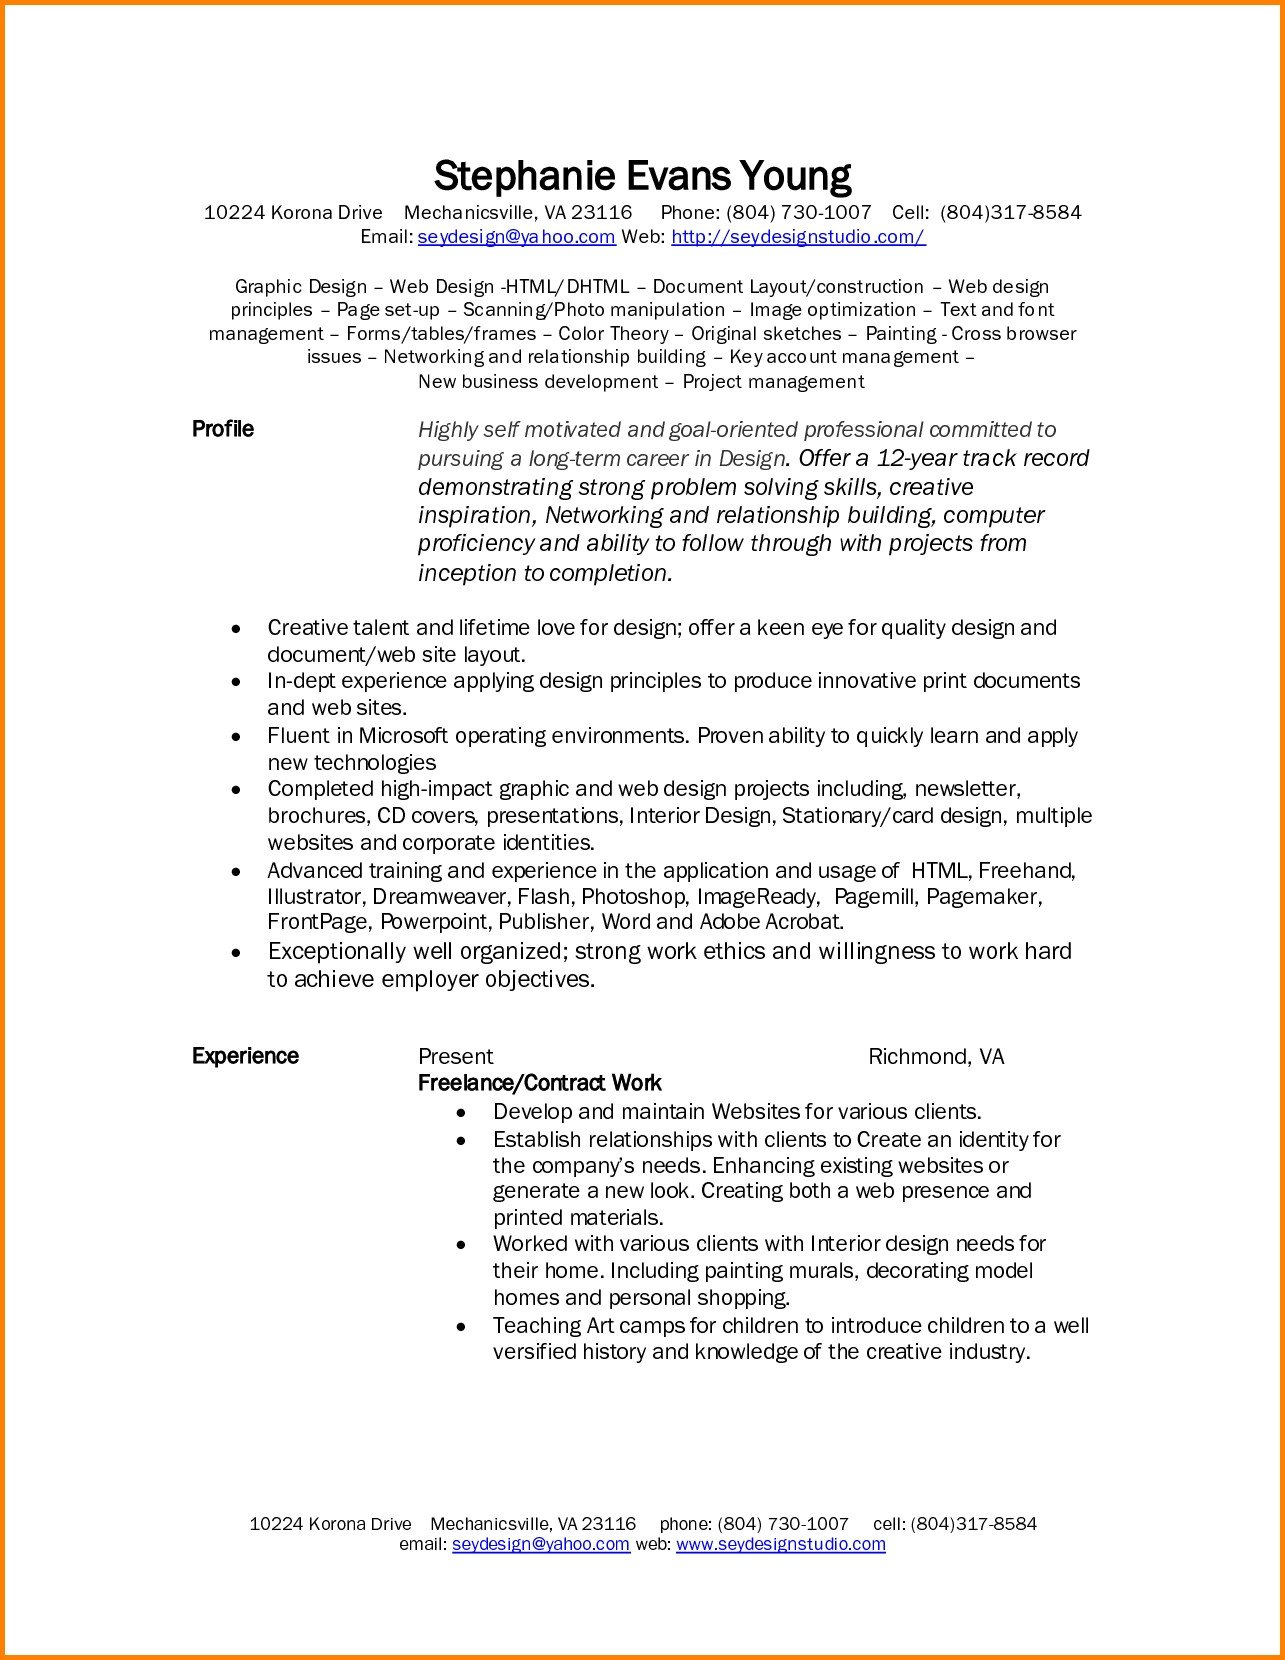 Graphic Design Contract Template Graphic Design Freelance Contract Template with Freelance